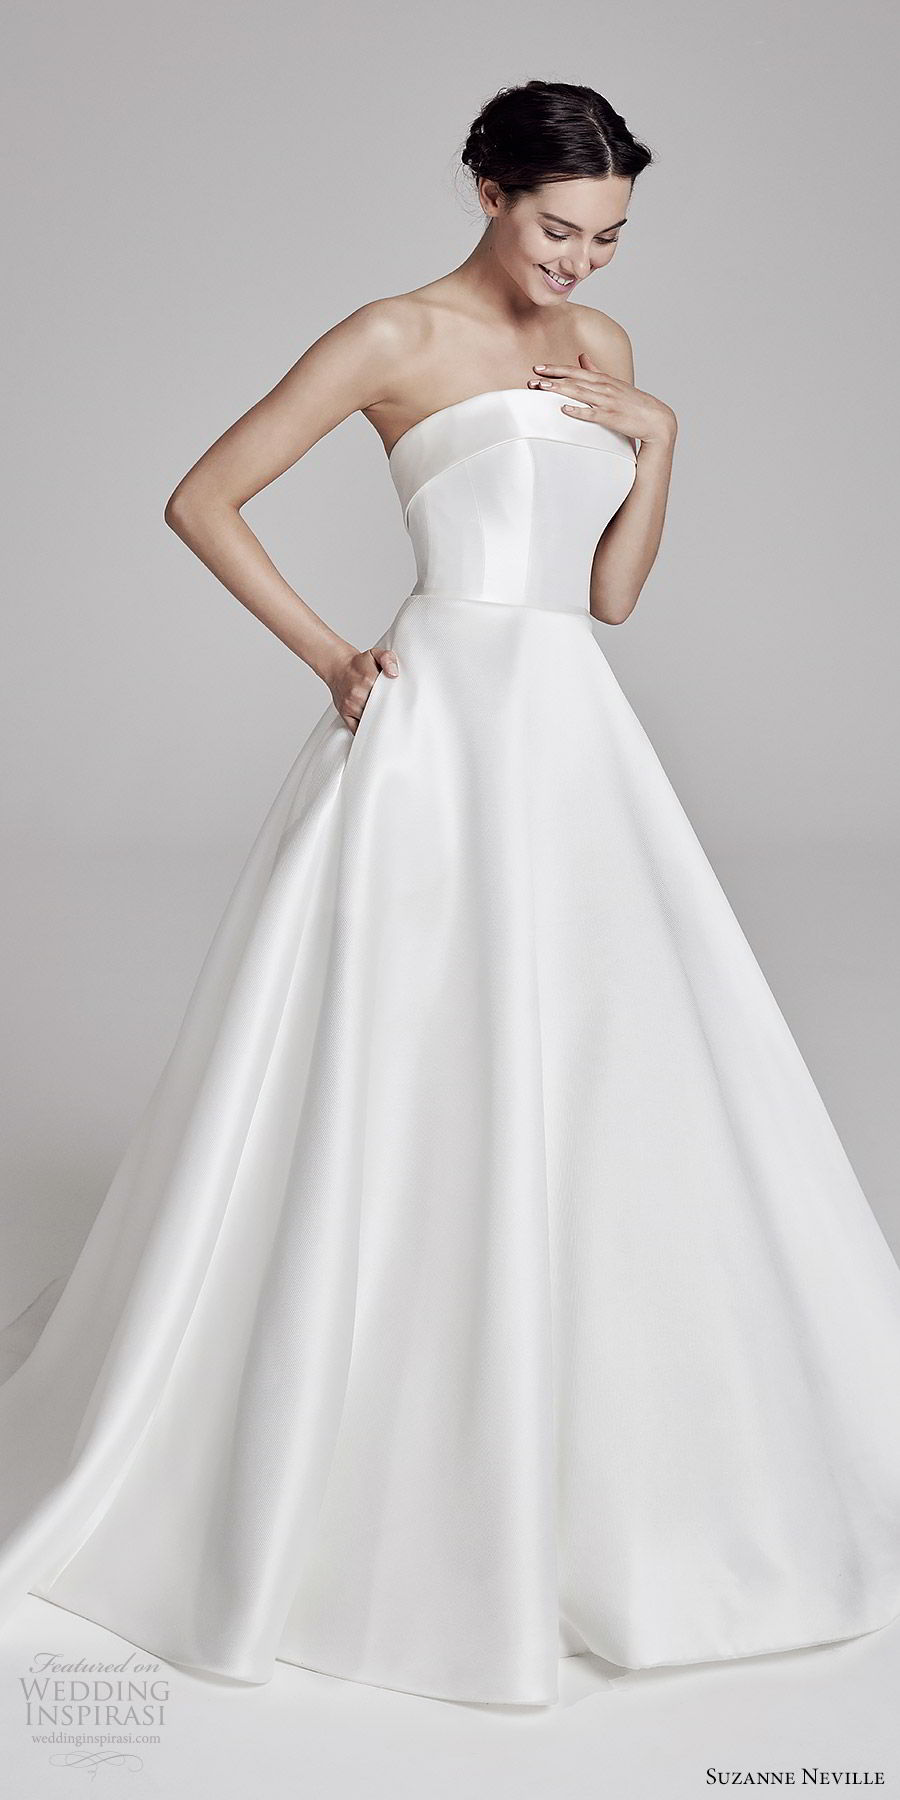 suzanne neville bridal 2019 strapless straight across a line ball gown wedding dress (loretta) simple classic pocket mv